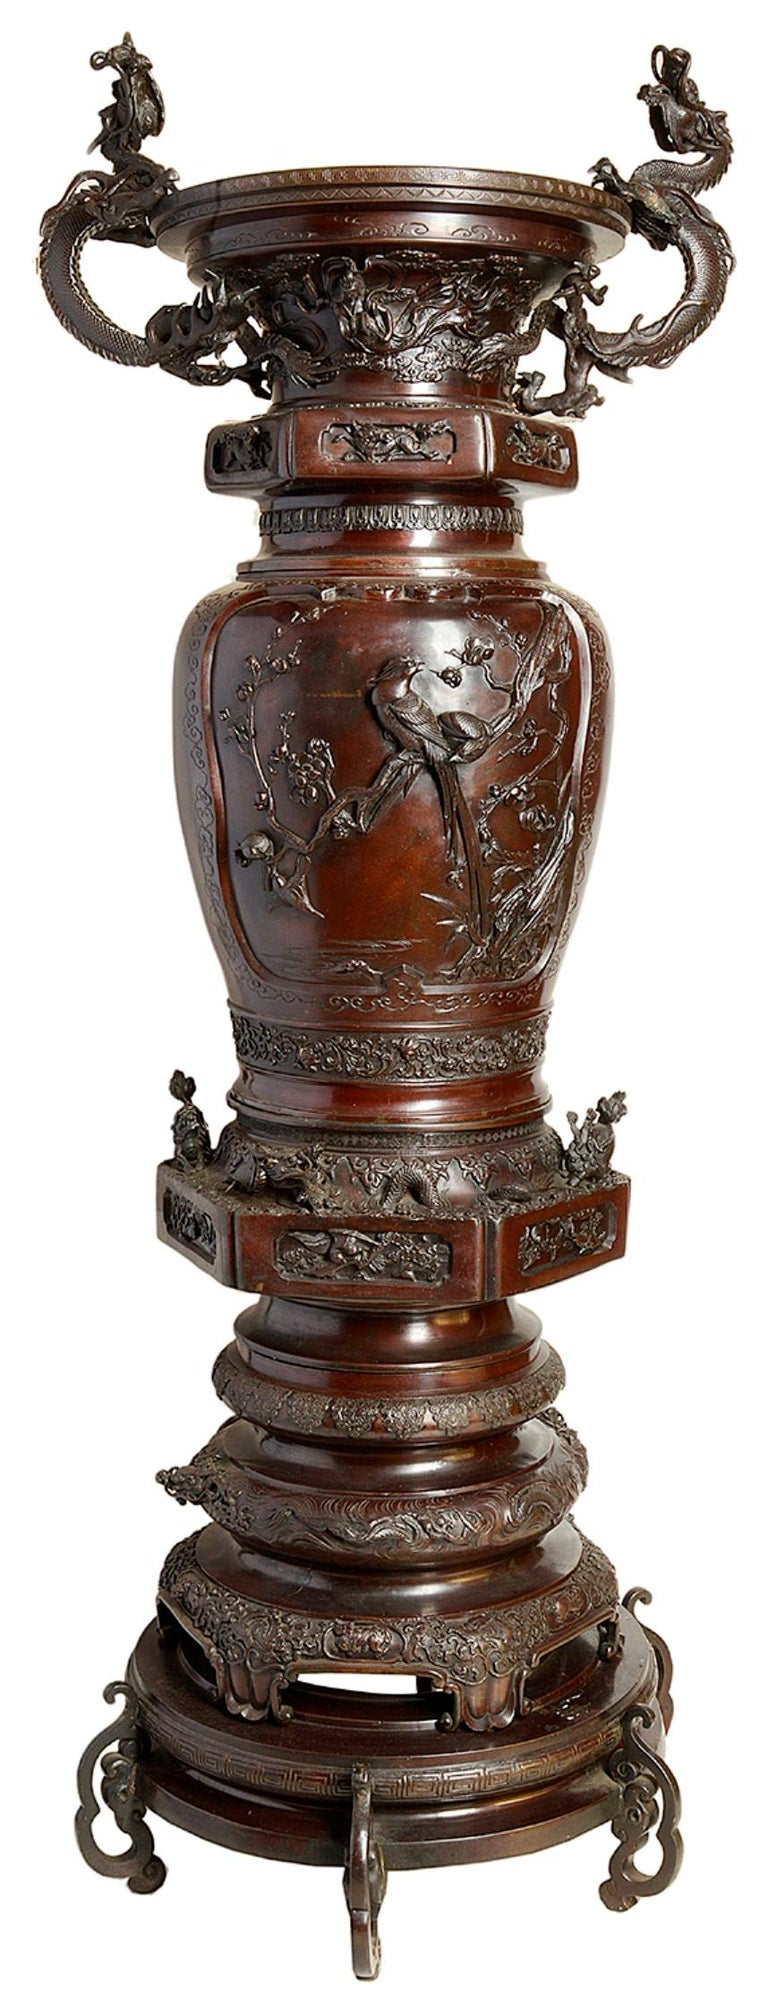 A very impressive, good quality pair of Japanese Meiji period (1868-1912) bronze two handled vases. Each have wonderful classical scenes of flowers and birds, surrounded by mythical dragons and motifs.